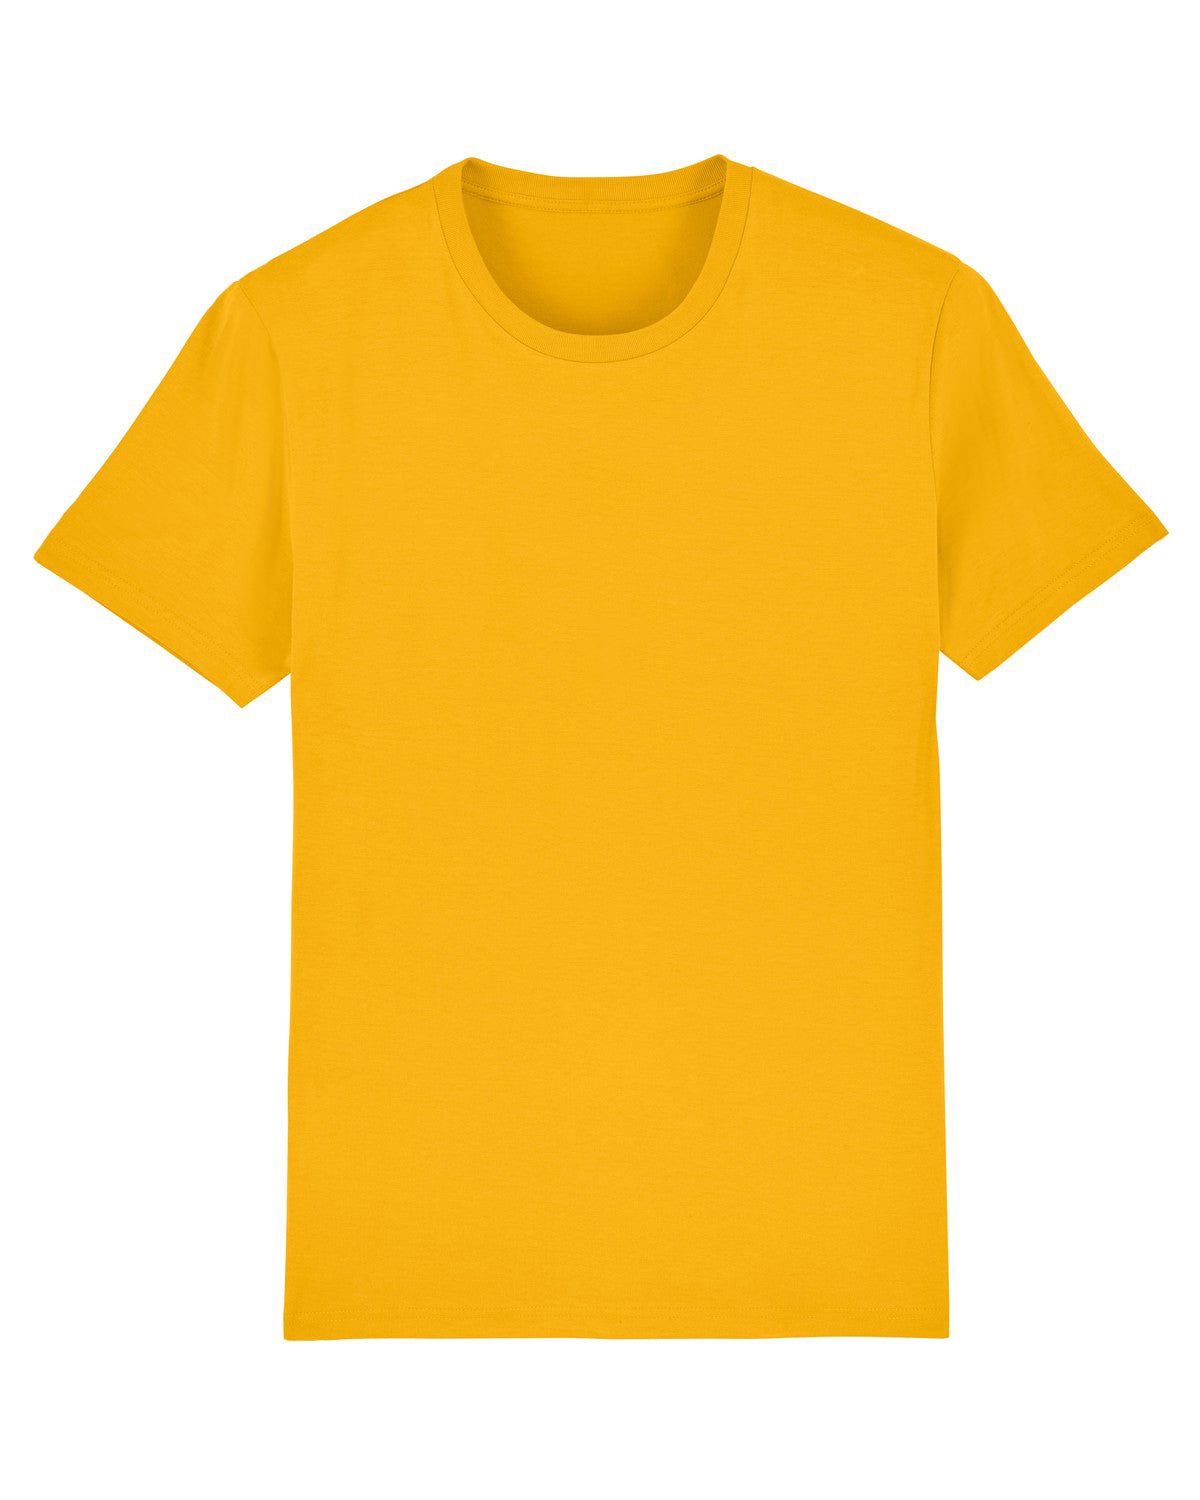 Attenborough Organic T-Shirt - Yellow